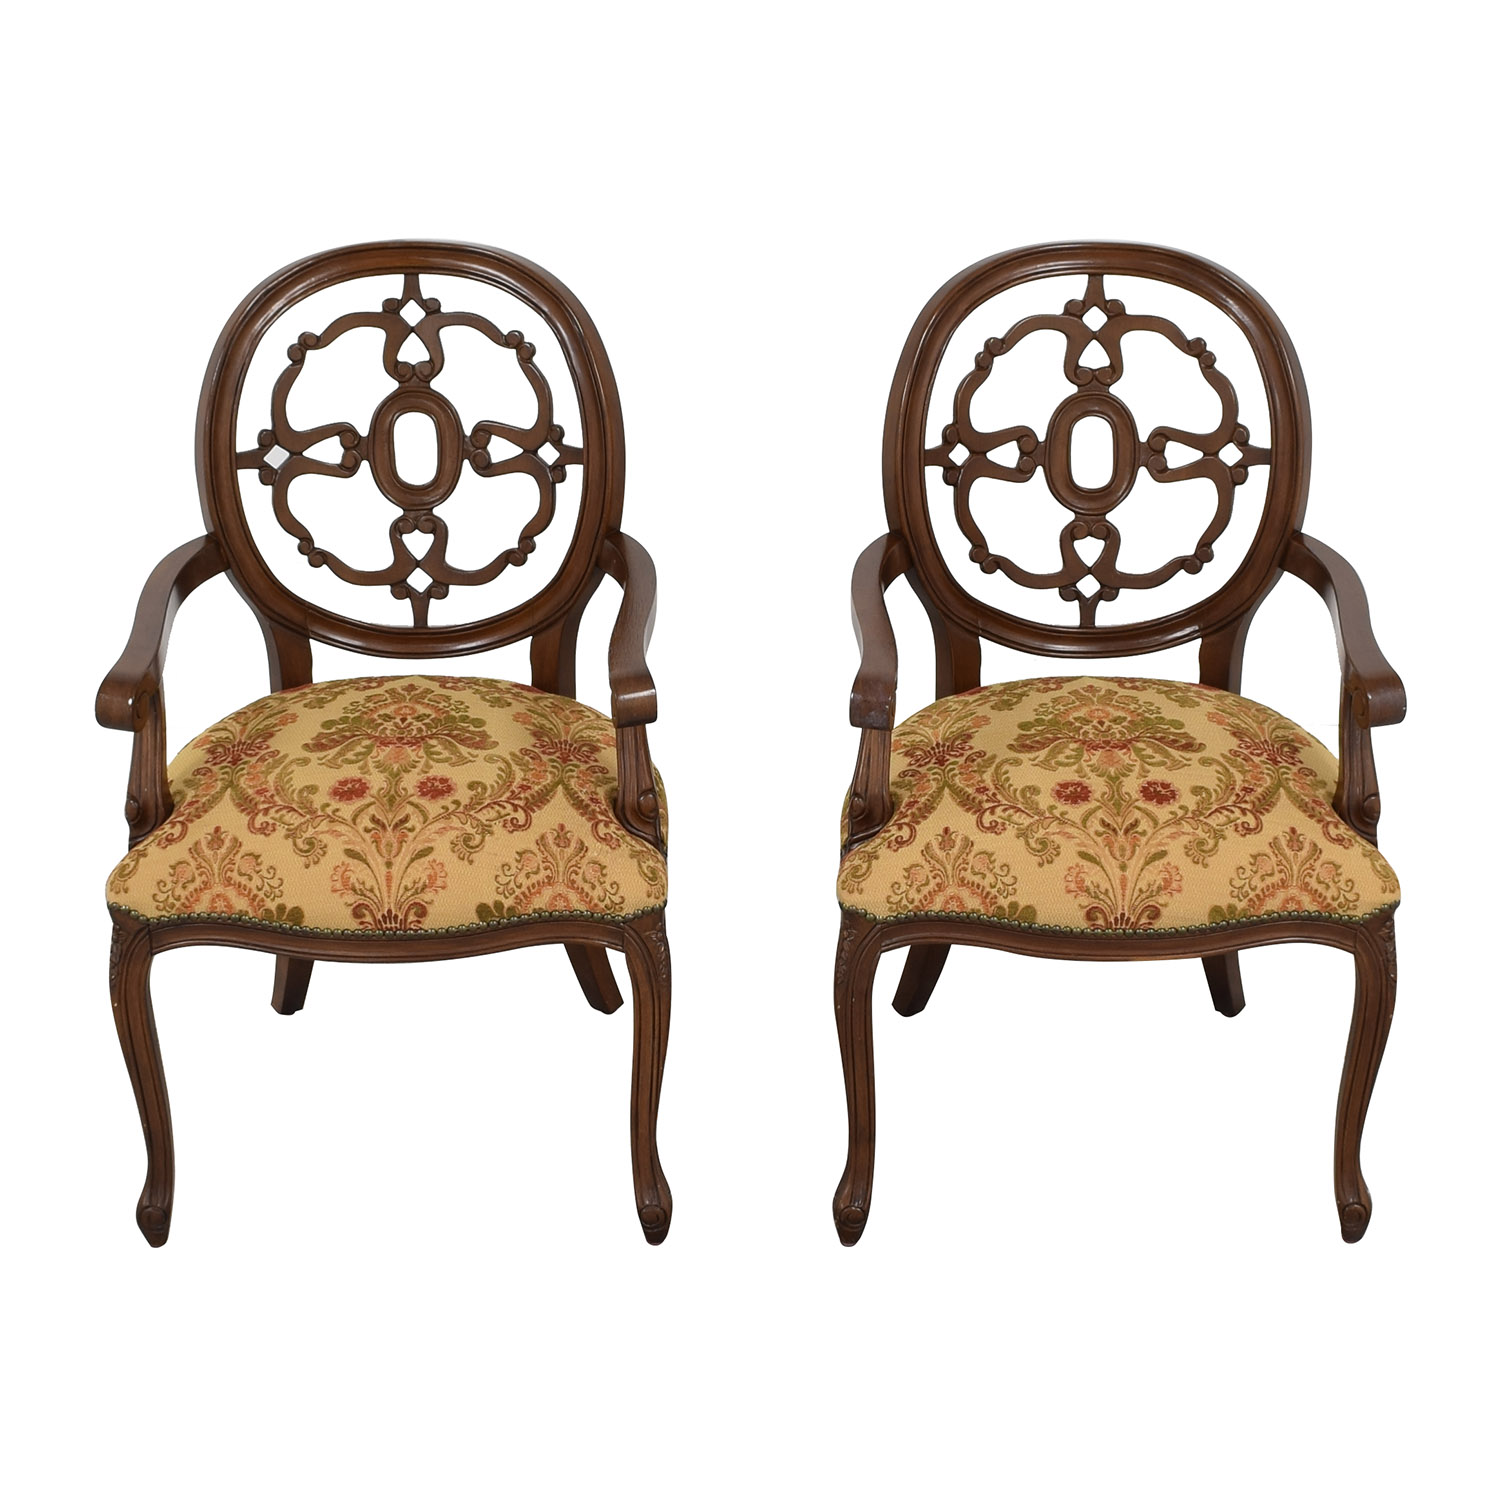 Floral Upholstered Armchairs with Antique Finish pa